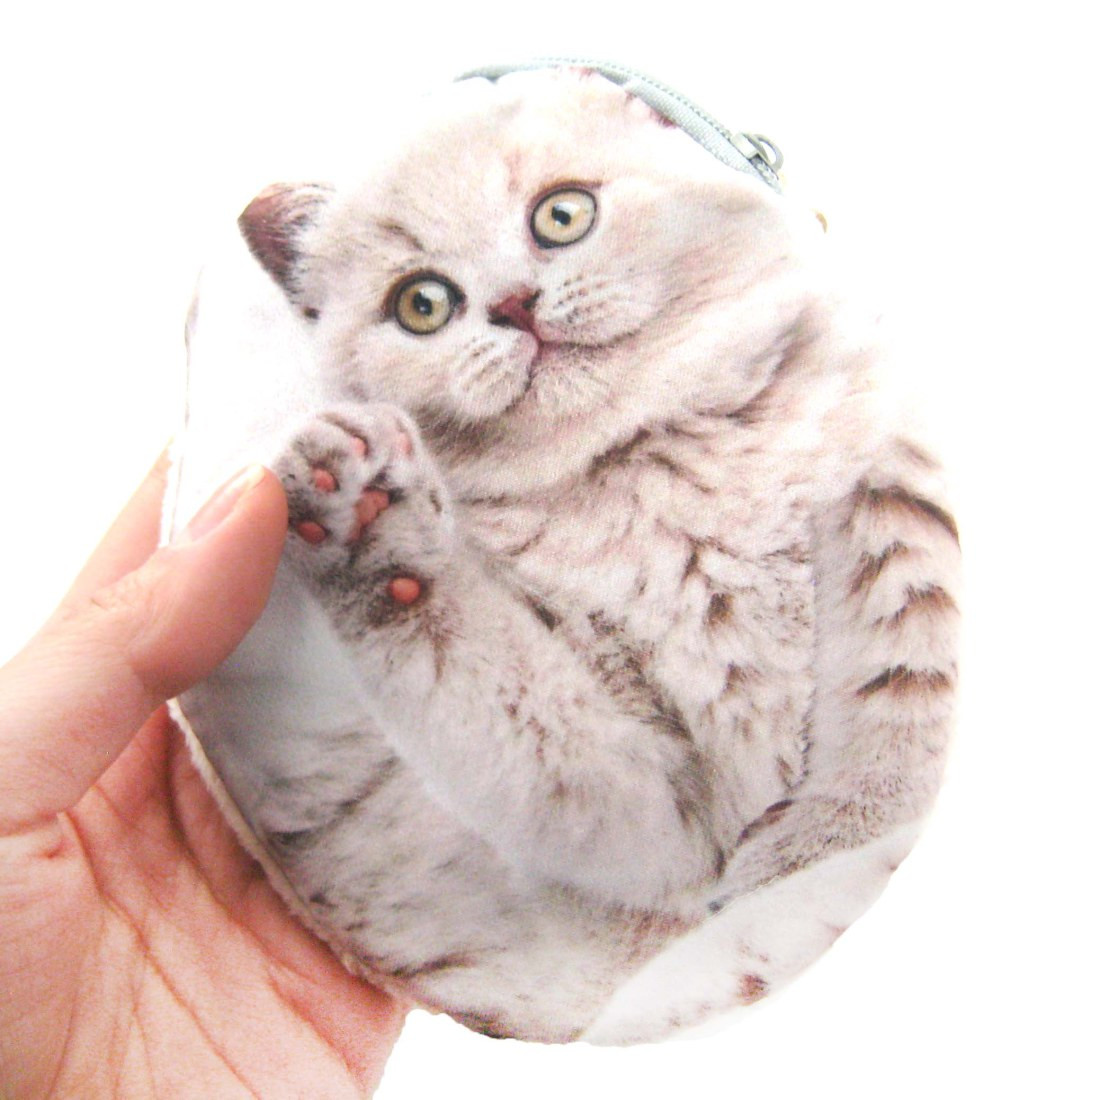 White Fluffy Kitty Cat Kitten Shaped Fabric Zipper Coin Purse Make Up Bag 7f777d105a54a